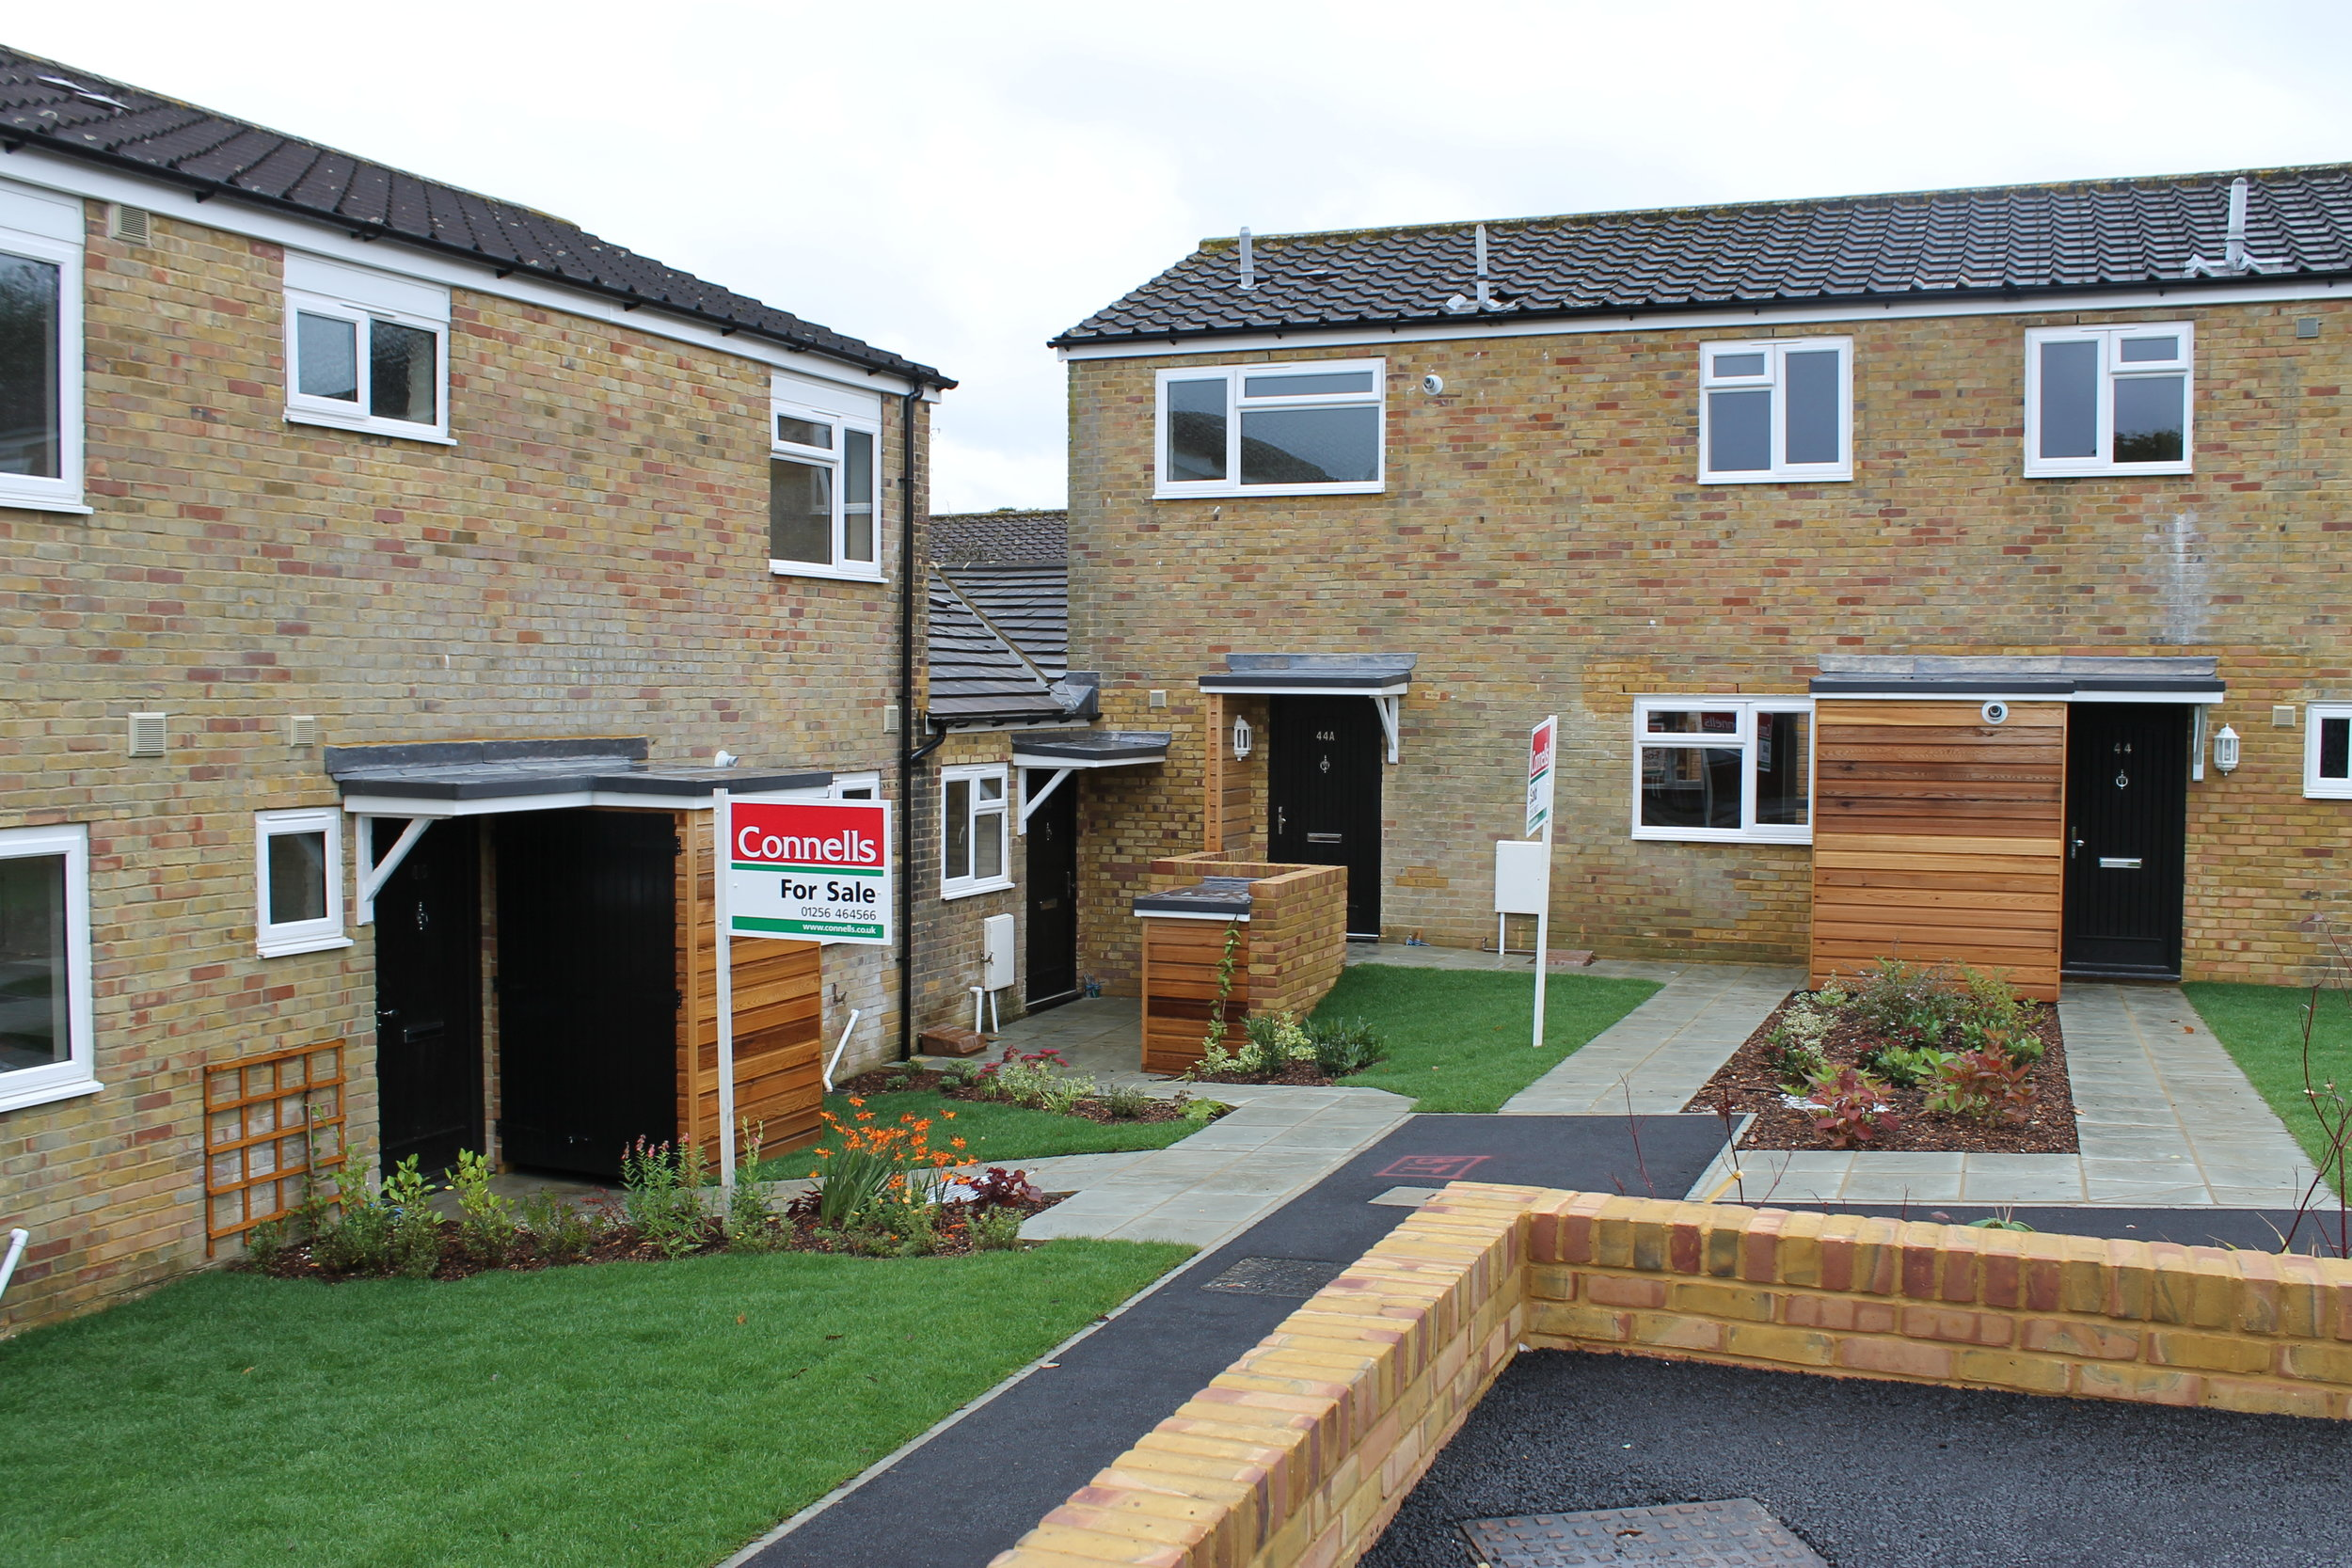 5 Plot Refurbishment of Ex-Council Property in Basingstoke